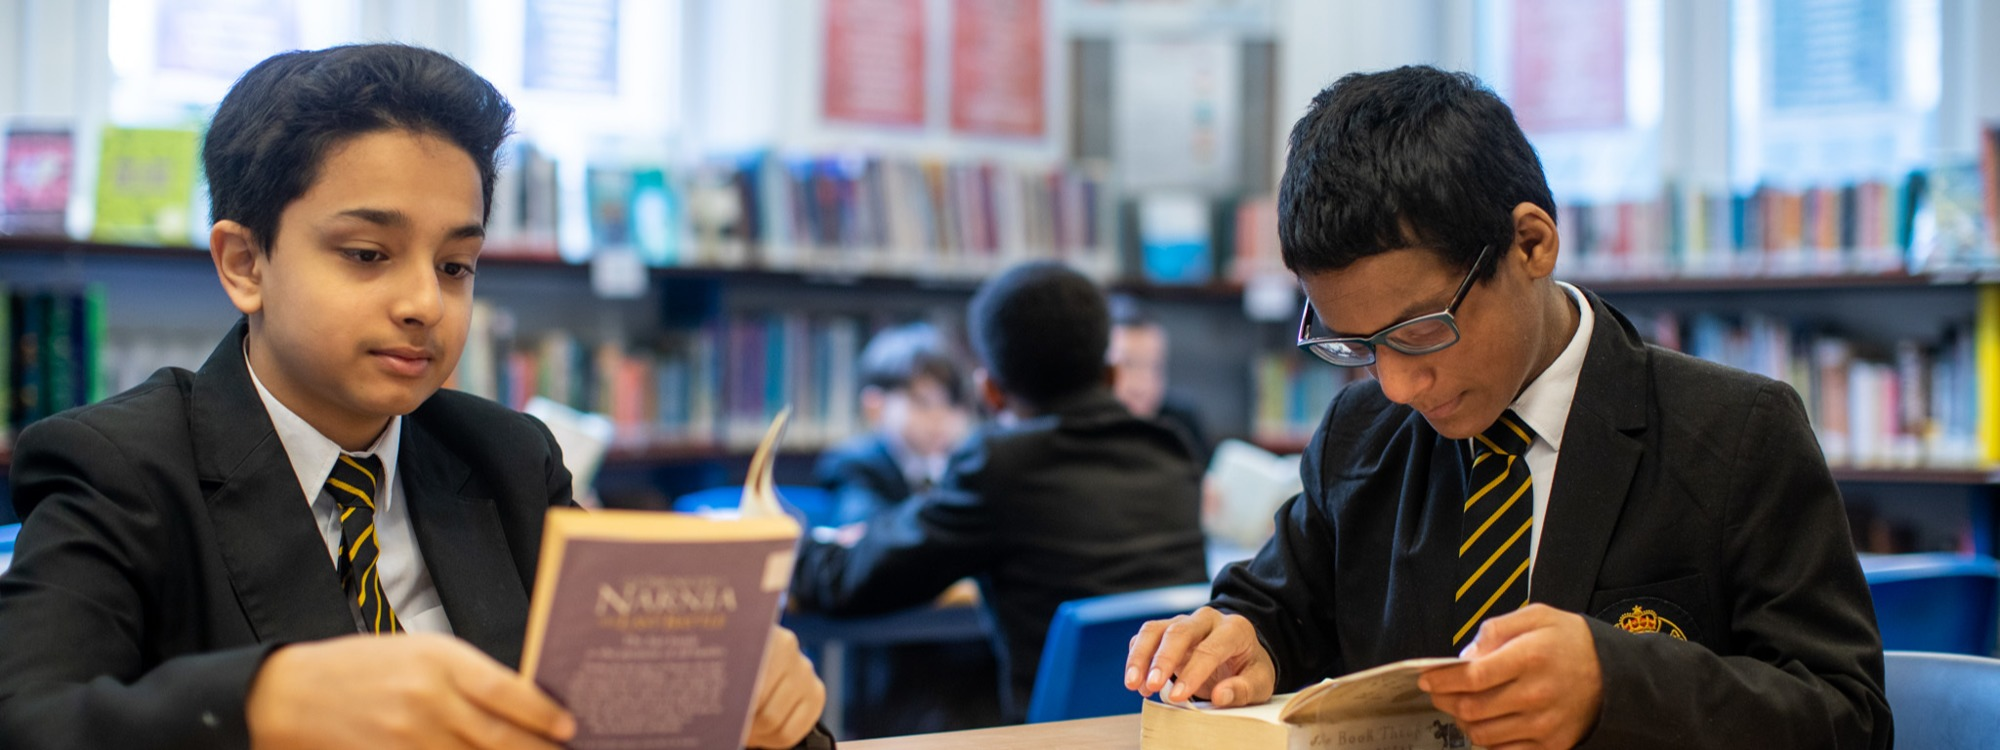 Pupils reading in library